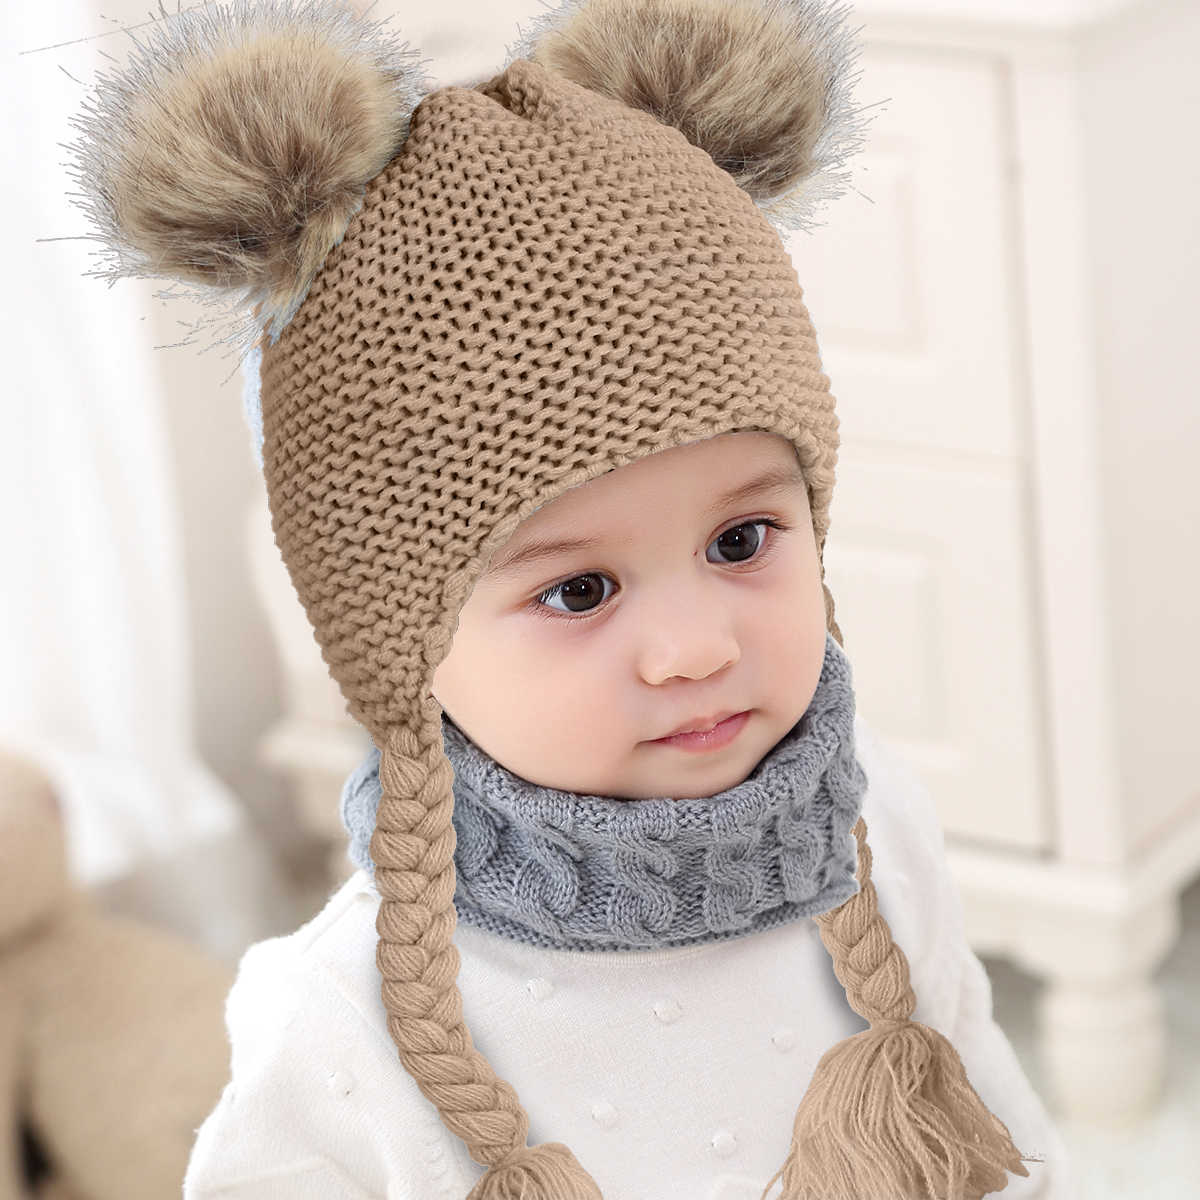 winter warm knit cover cap Infant Baby Toddler Girl Pom Braid Ears Beanie Hat